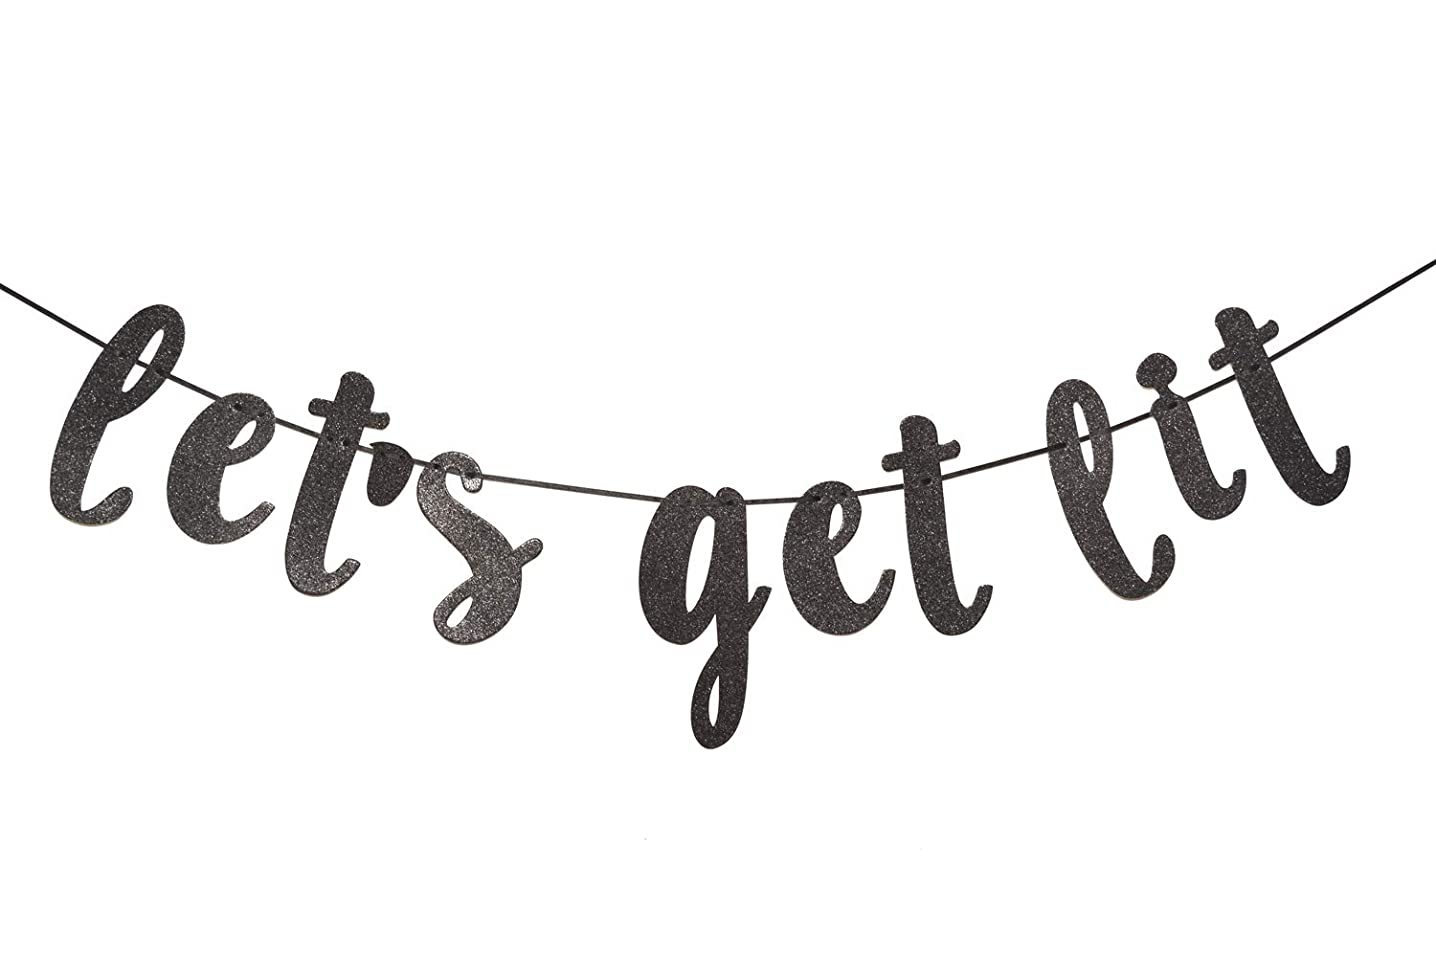 Let's Get Lit Glitter Black Banner Garland Sign, Bachelorette Party, Bridal Shower, Christmas, New Years Eve, Birthday, Wedding Decorations (Black)